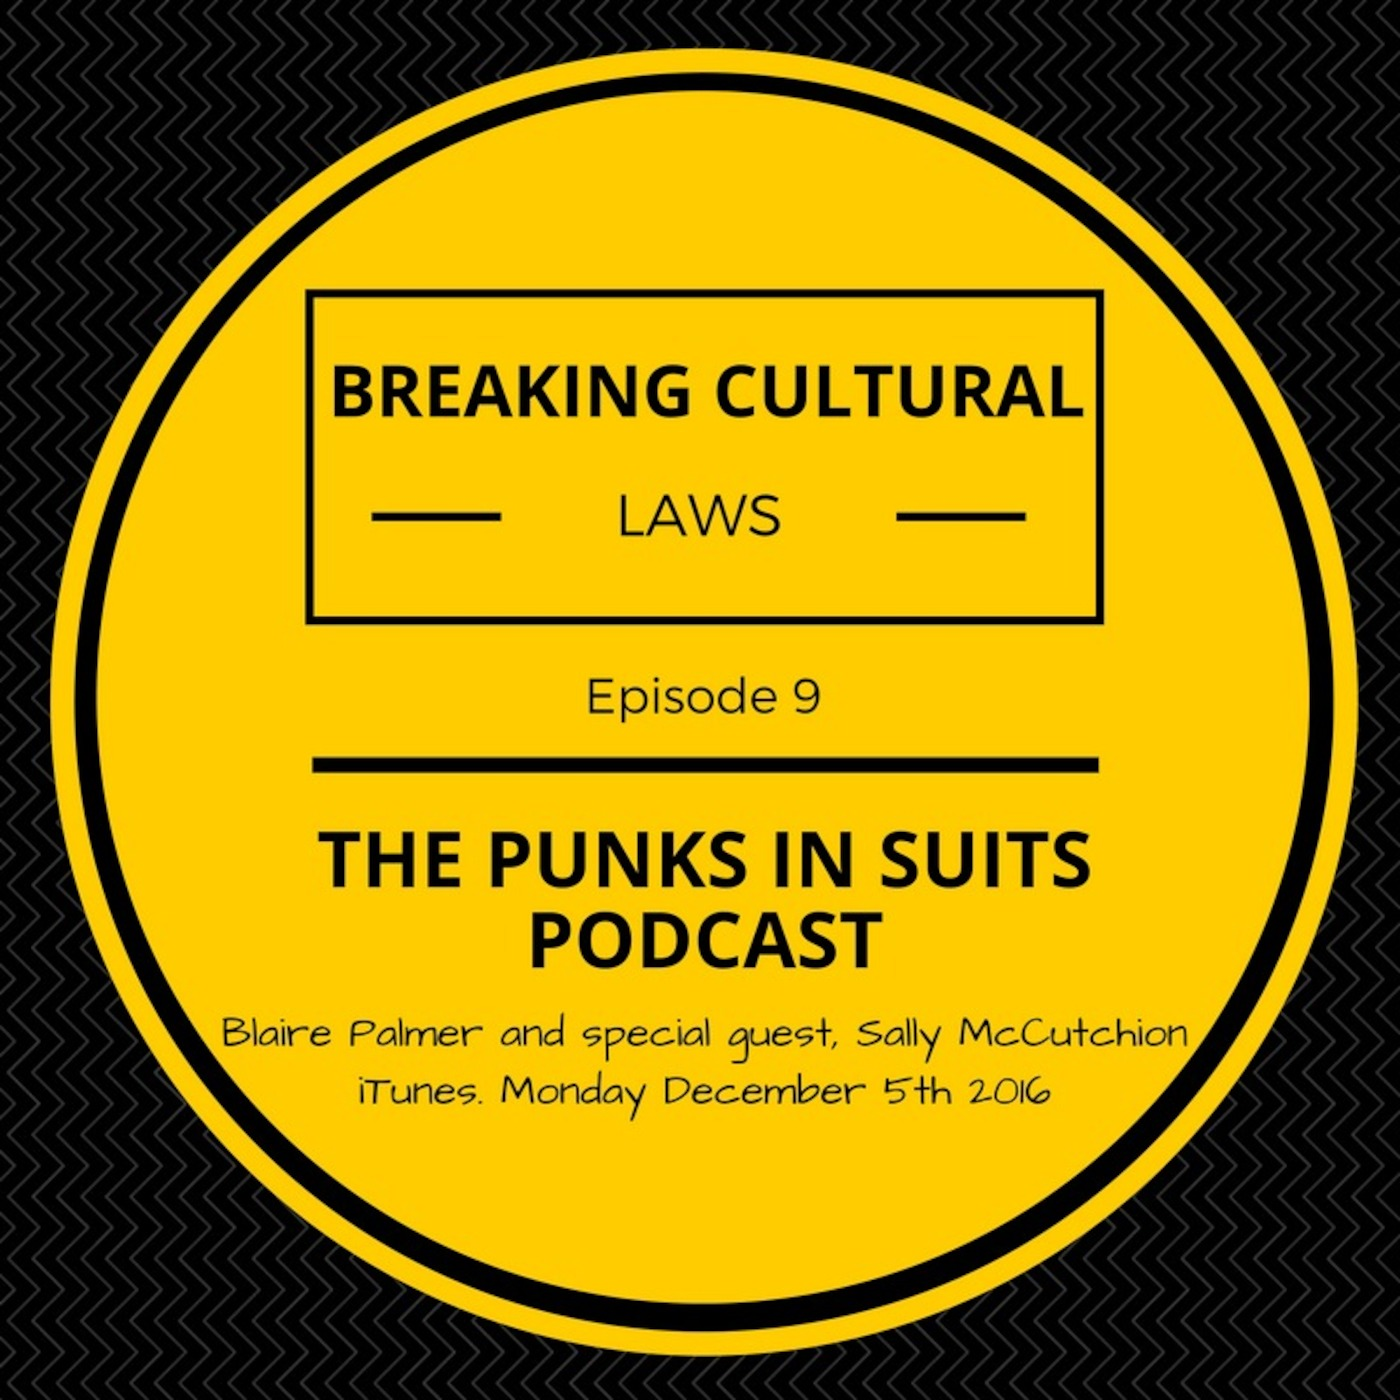 Episode 9: Breaking Cultural Laws...with guest Sally McCutchion